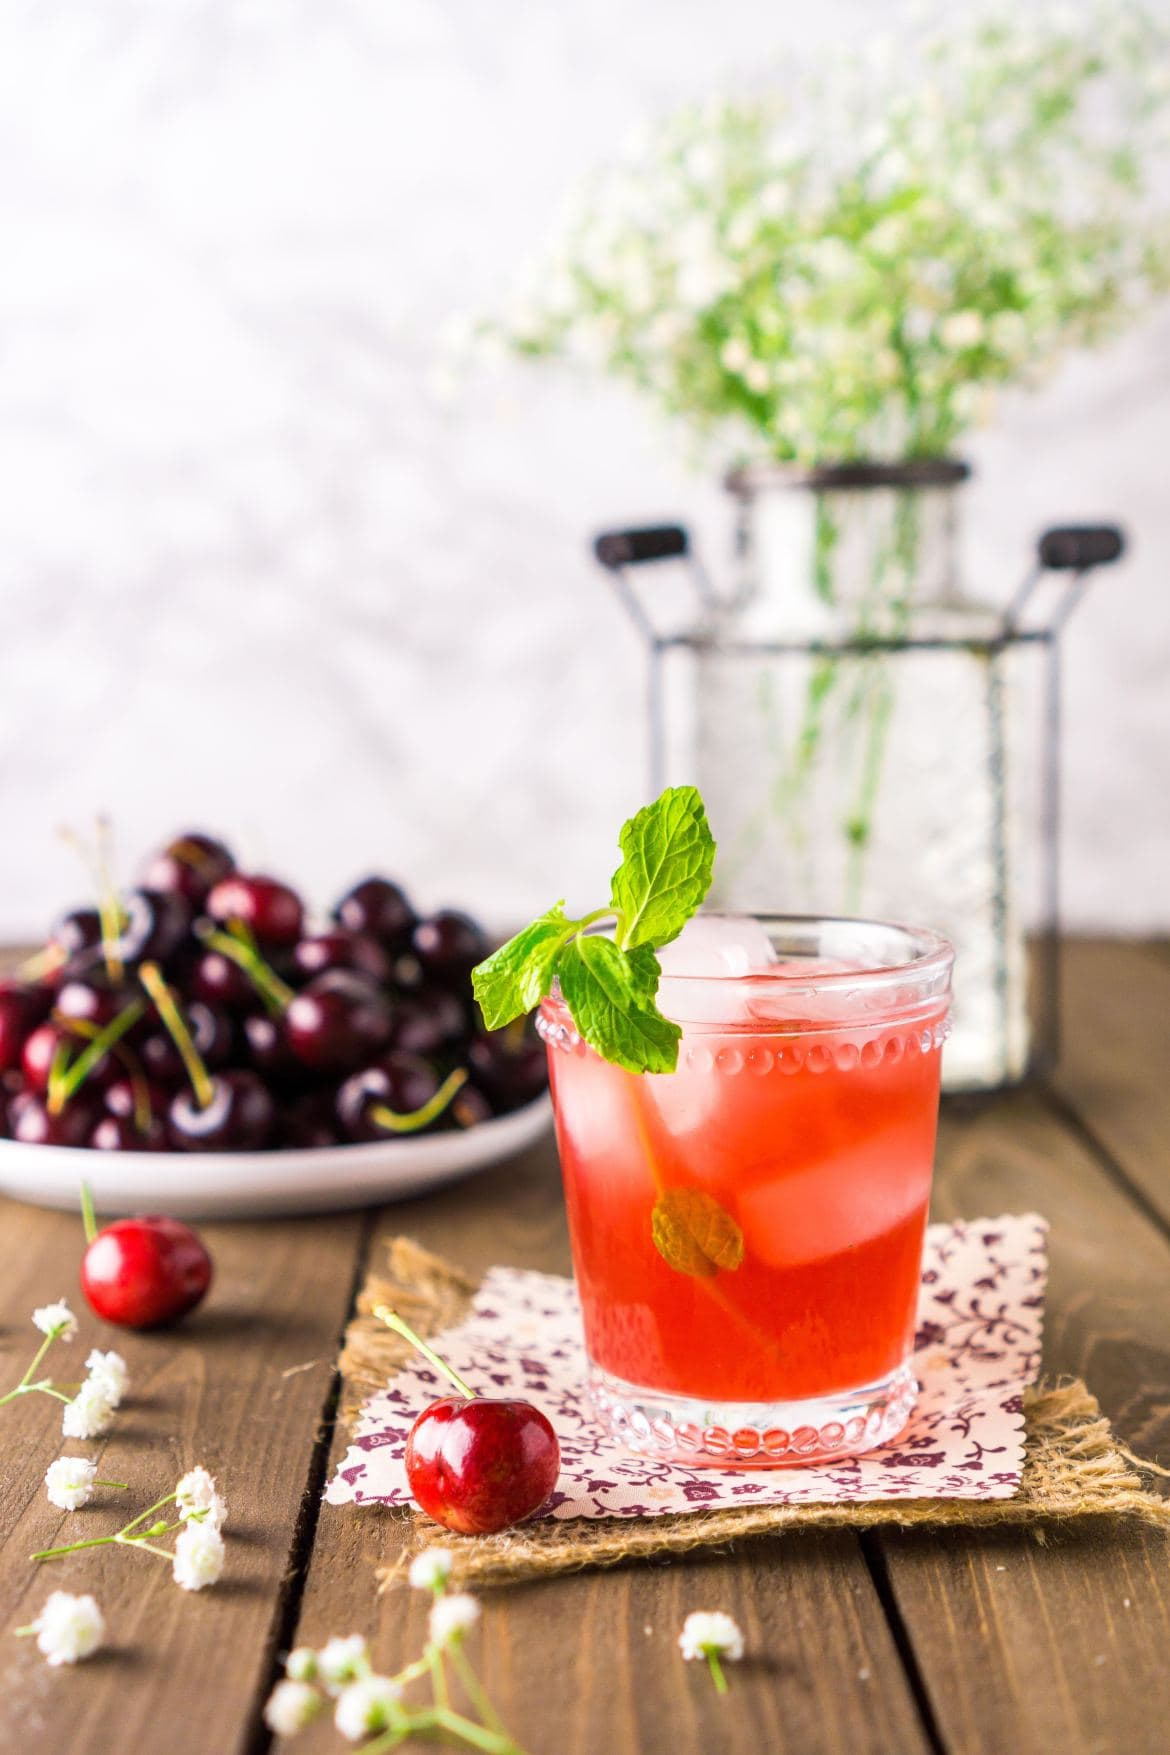 Cherry Bourbon Cocktail on a patterned napkin with a plate of cherries in the background.